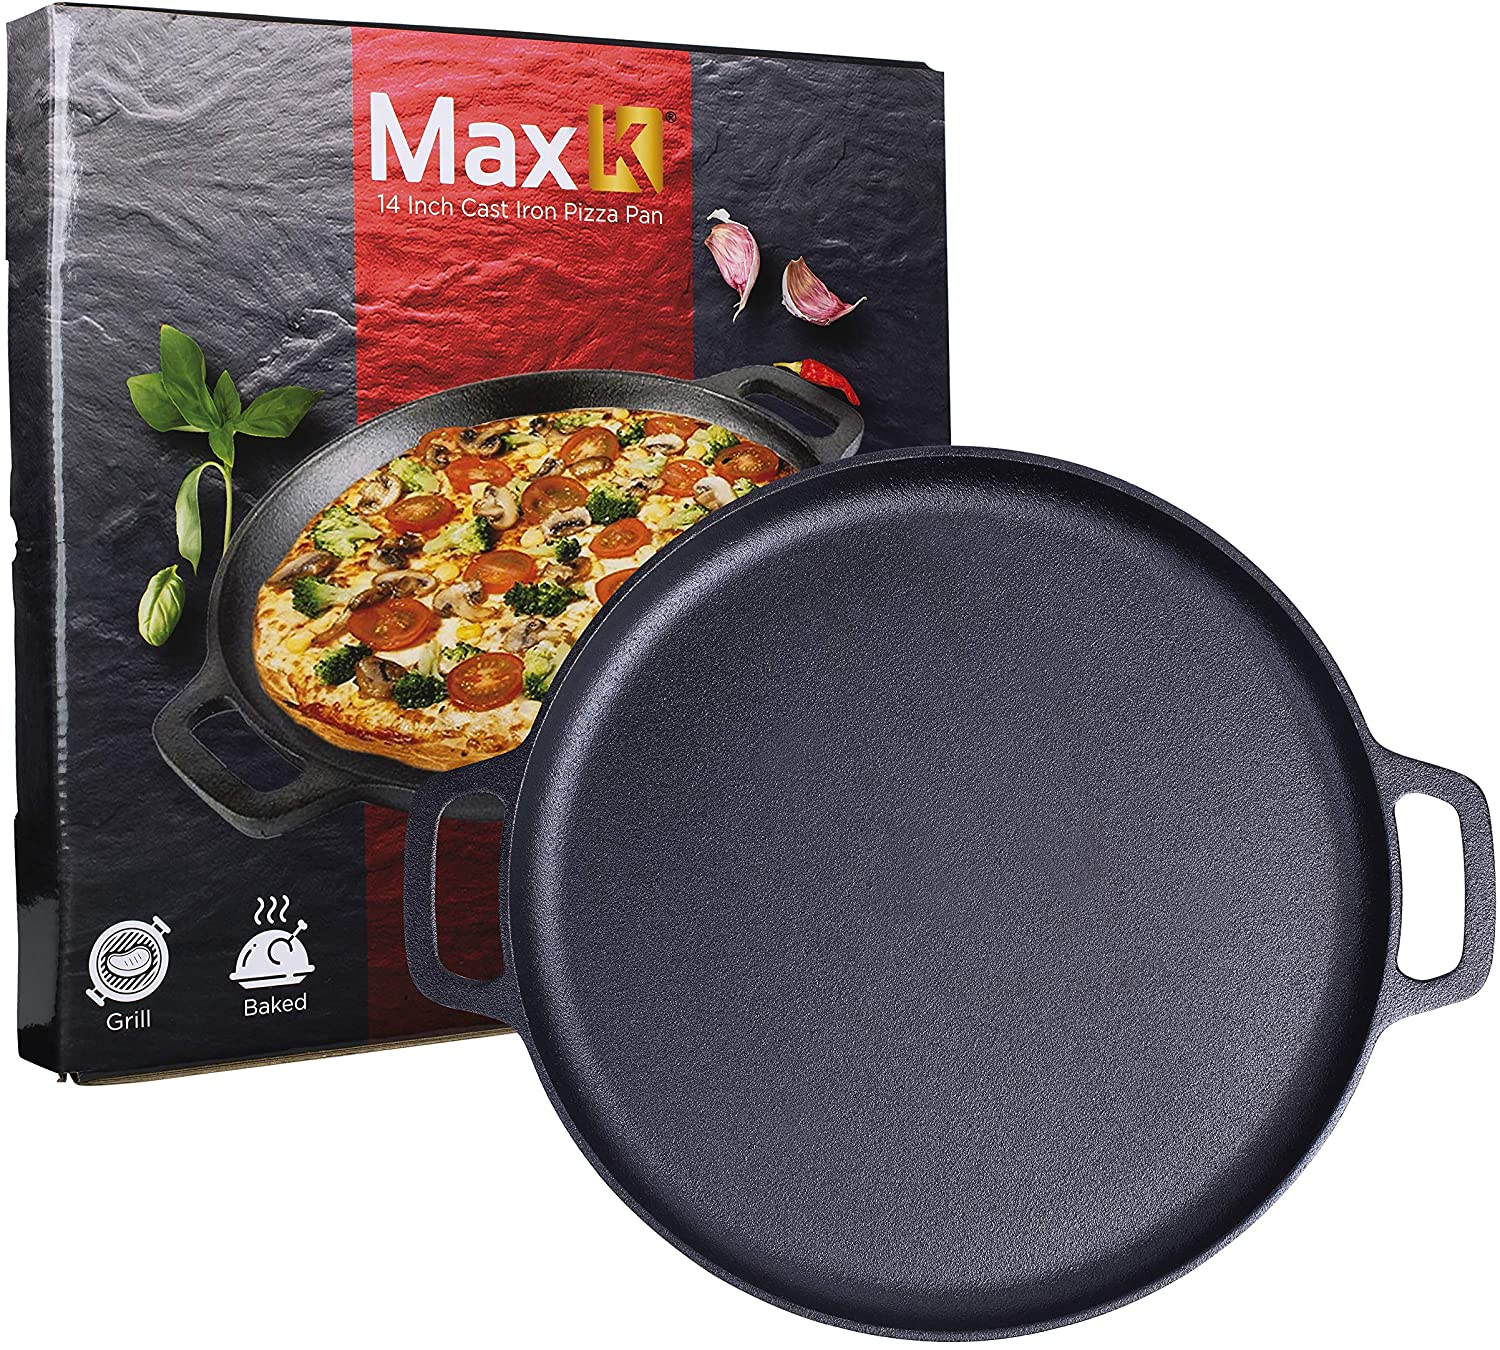 Max K 14-Inch Pizza Pan with Handles - Pre-Seasoned Skillet for Baking, Roasting, Frying, Induction Cooking - Large Cast Iron Bakeware for Cookies, Chicken, Casseroles - Black Cookware with Deep Walls